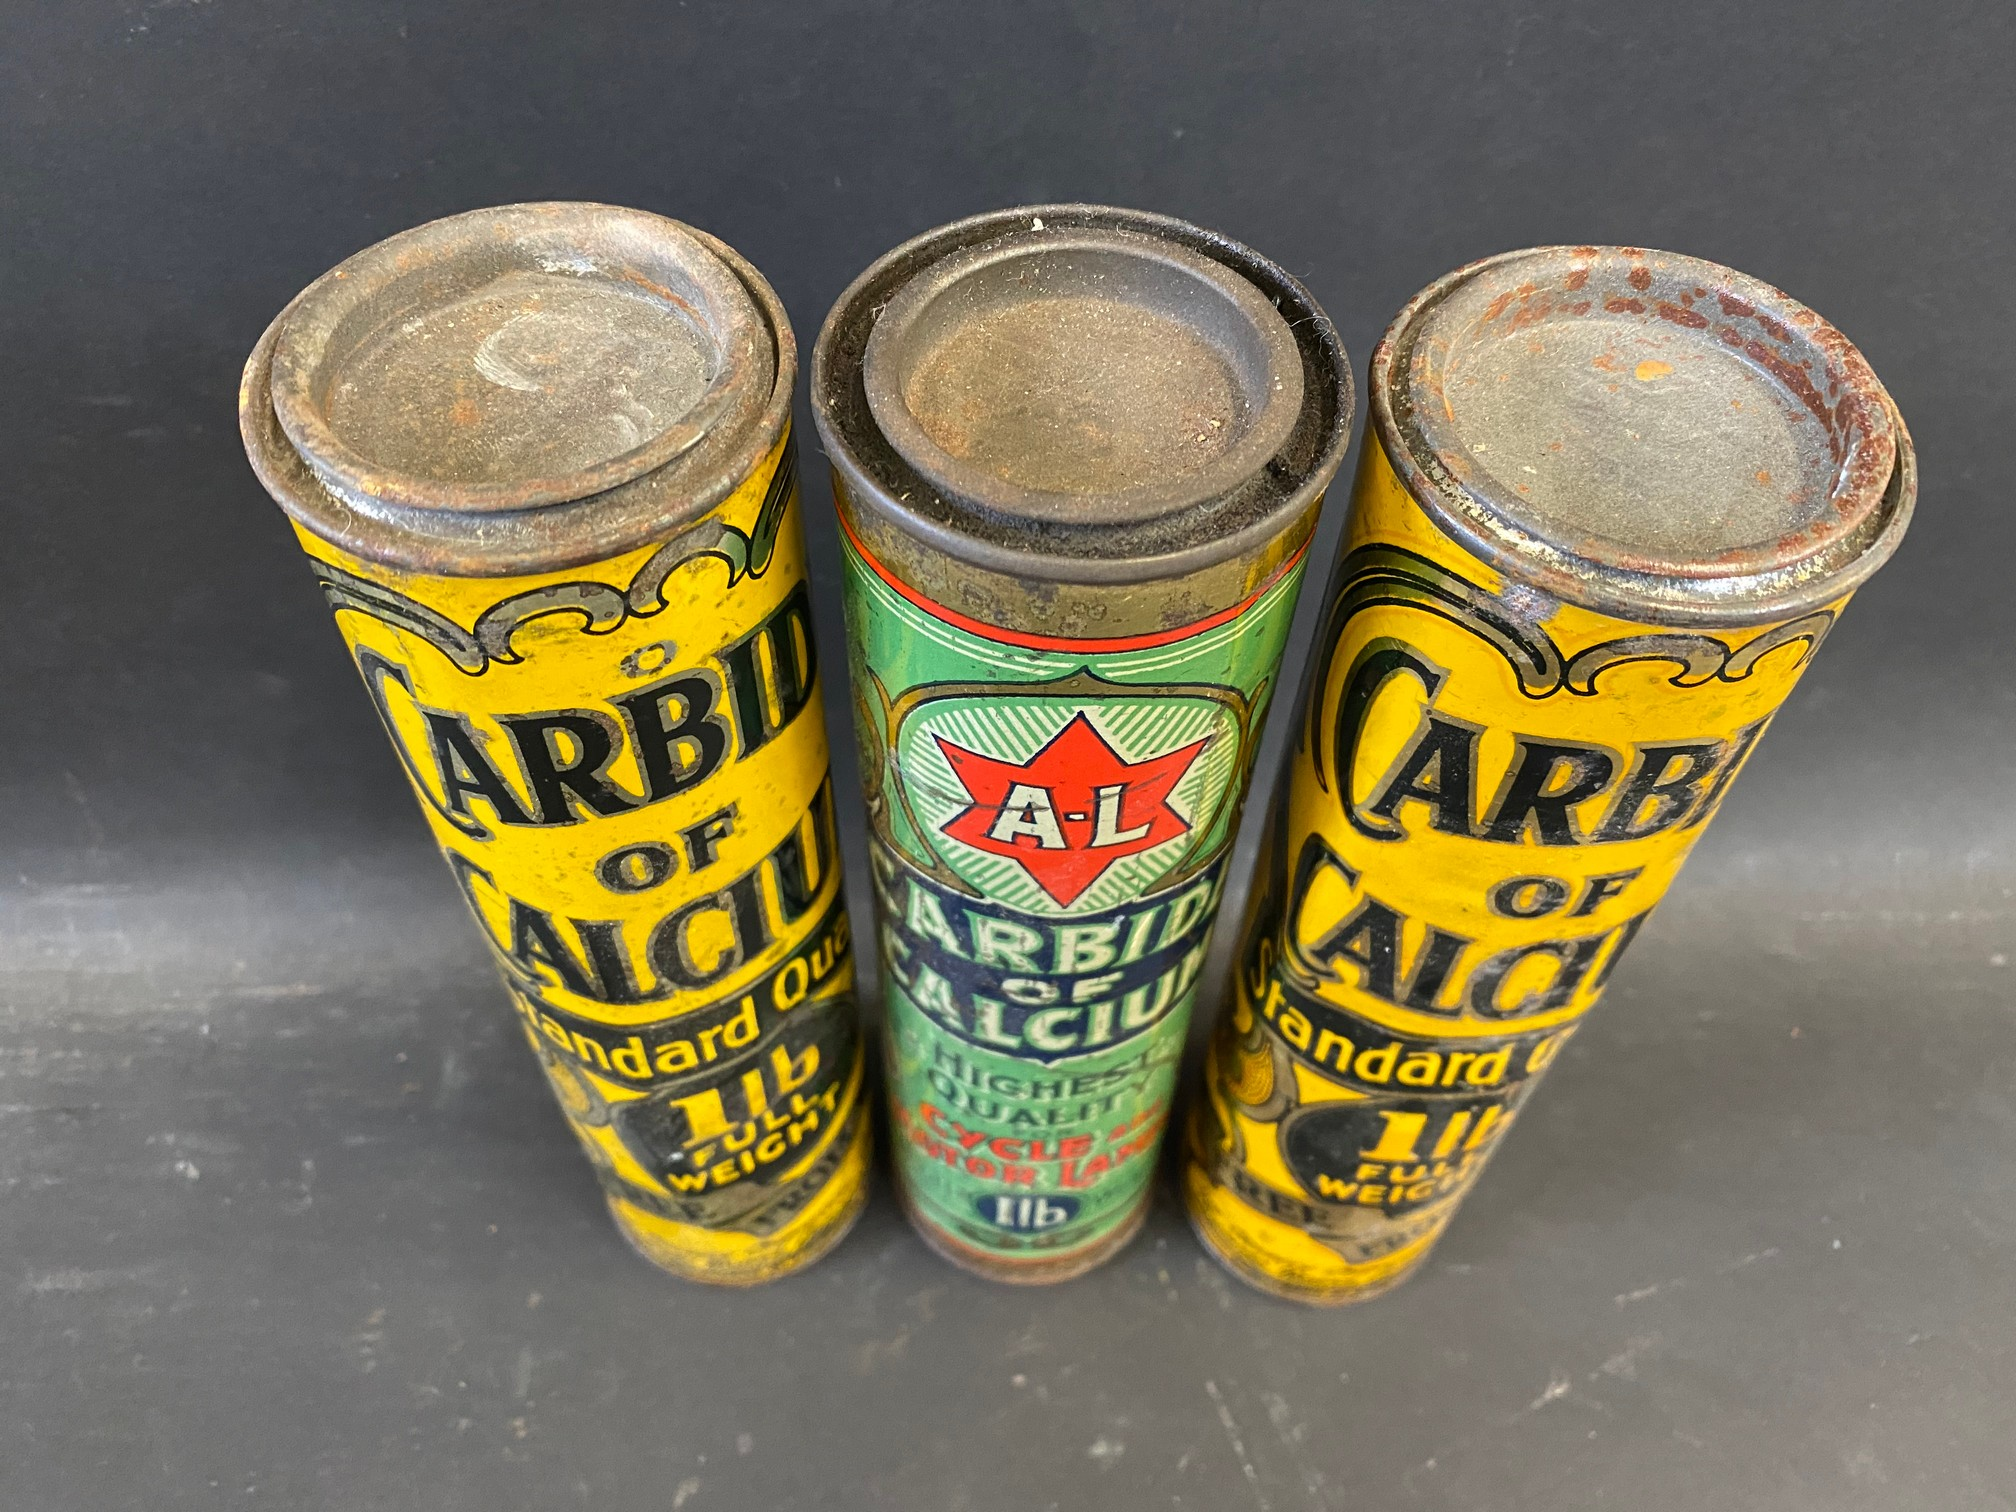 Three Carbide of Calcium cylindrical tins. - Image 2 of 3